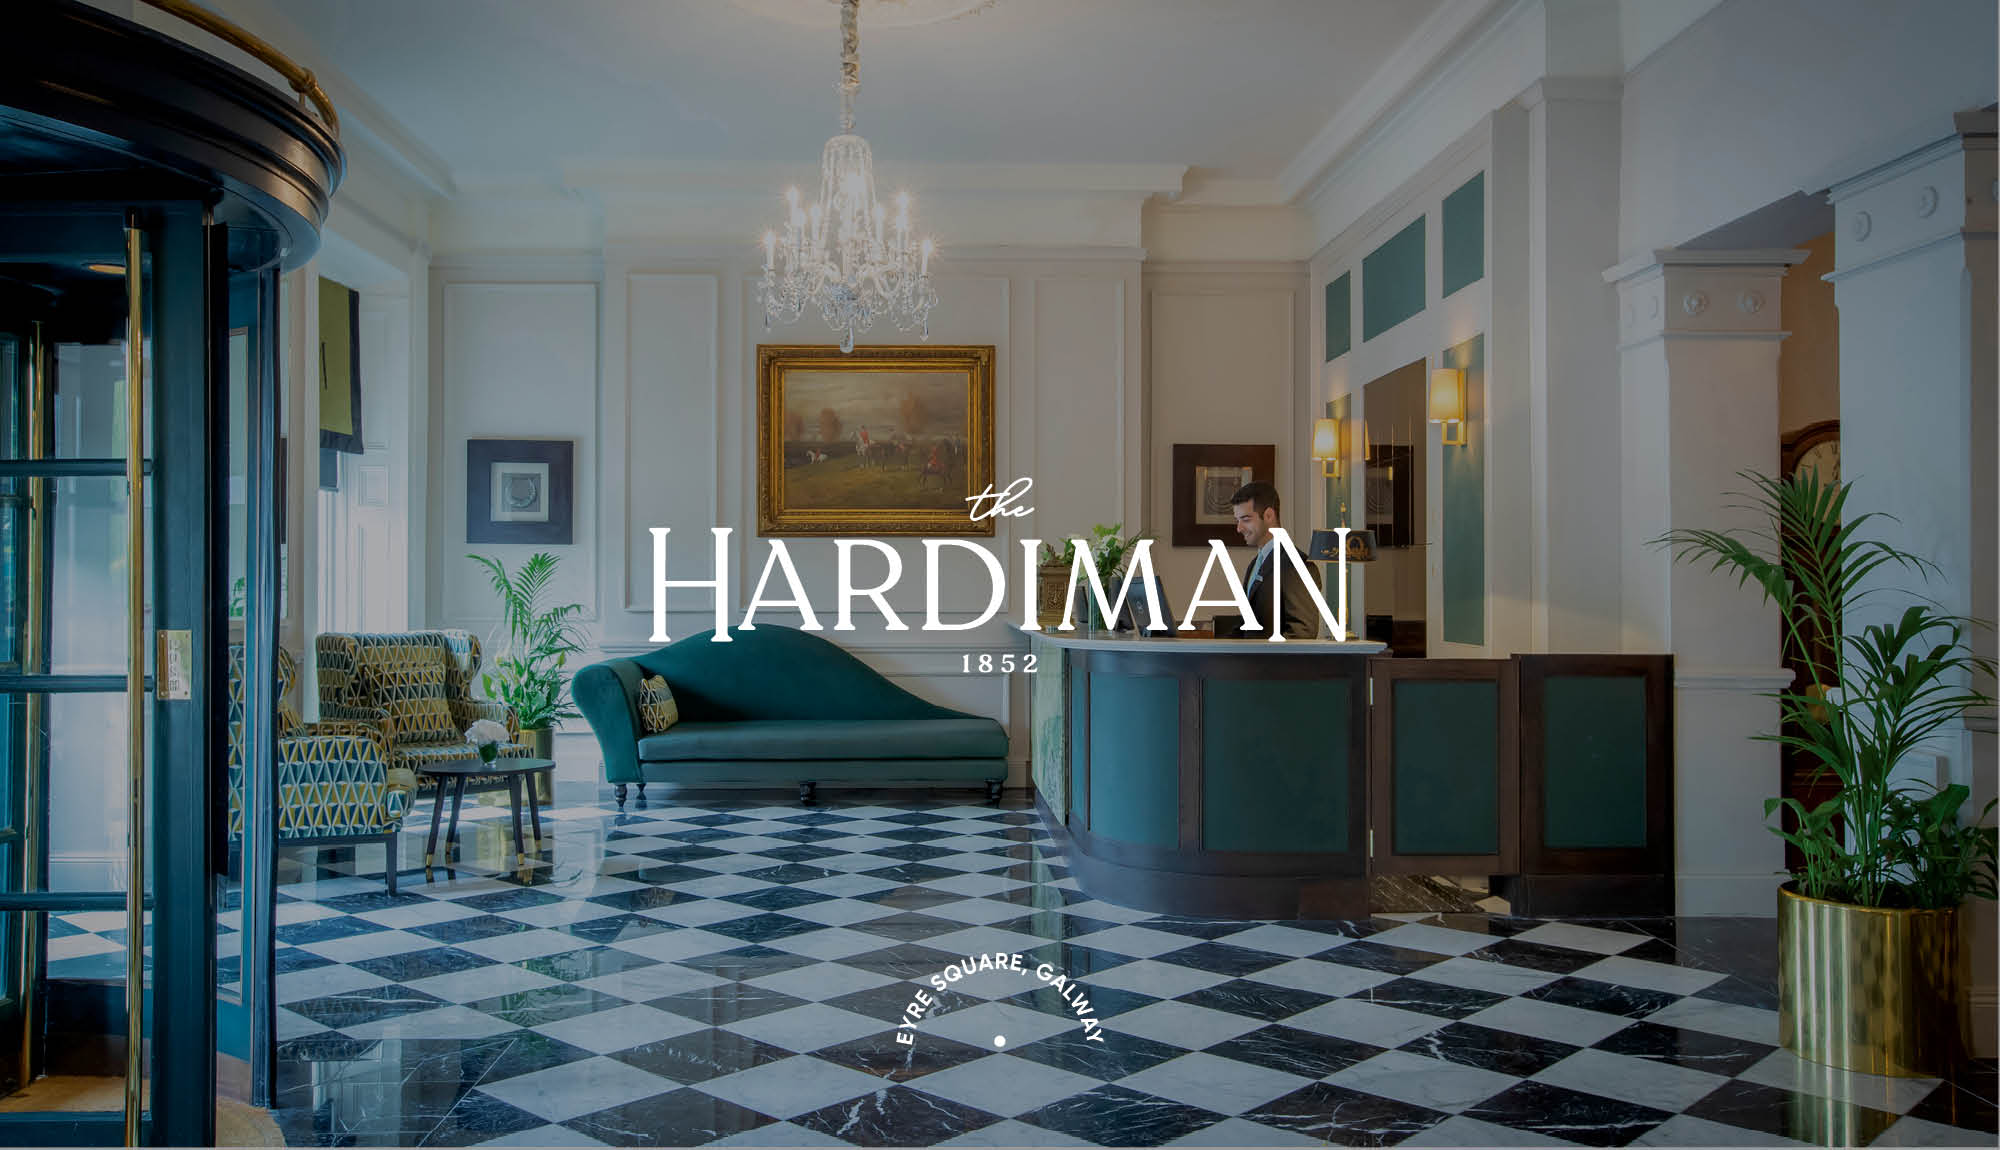 Cover image: The Hardiman